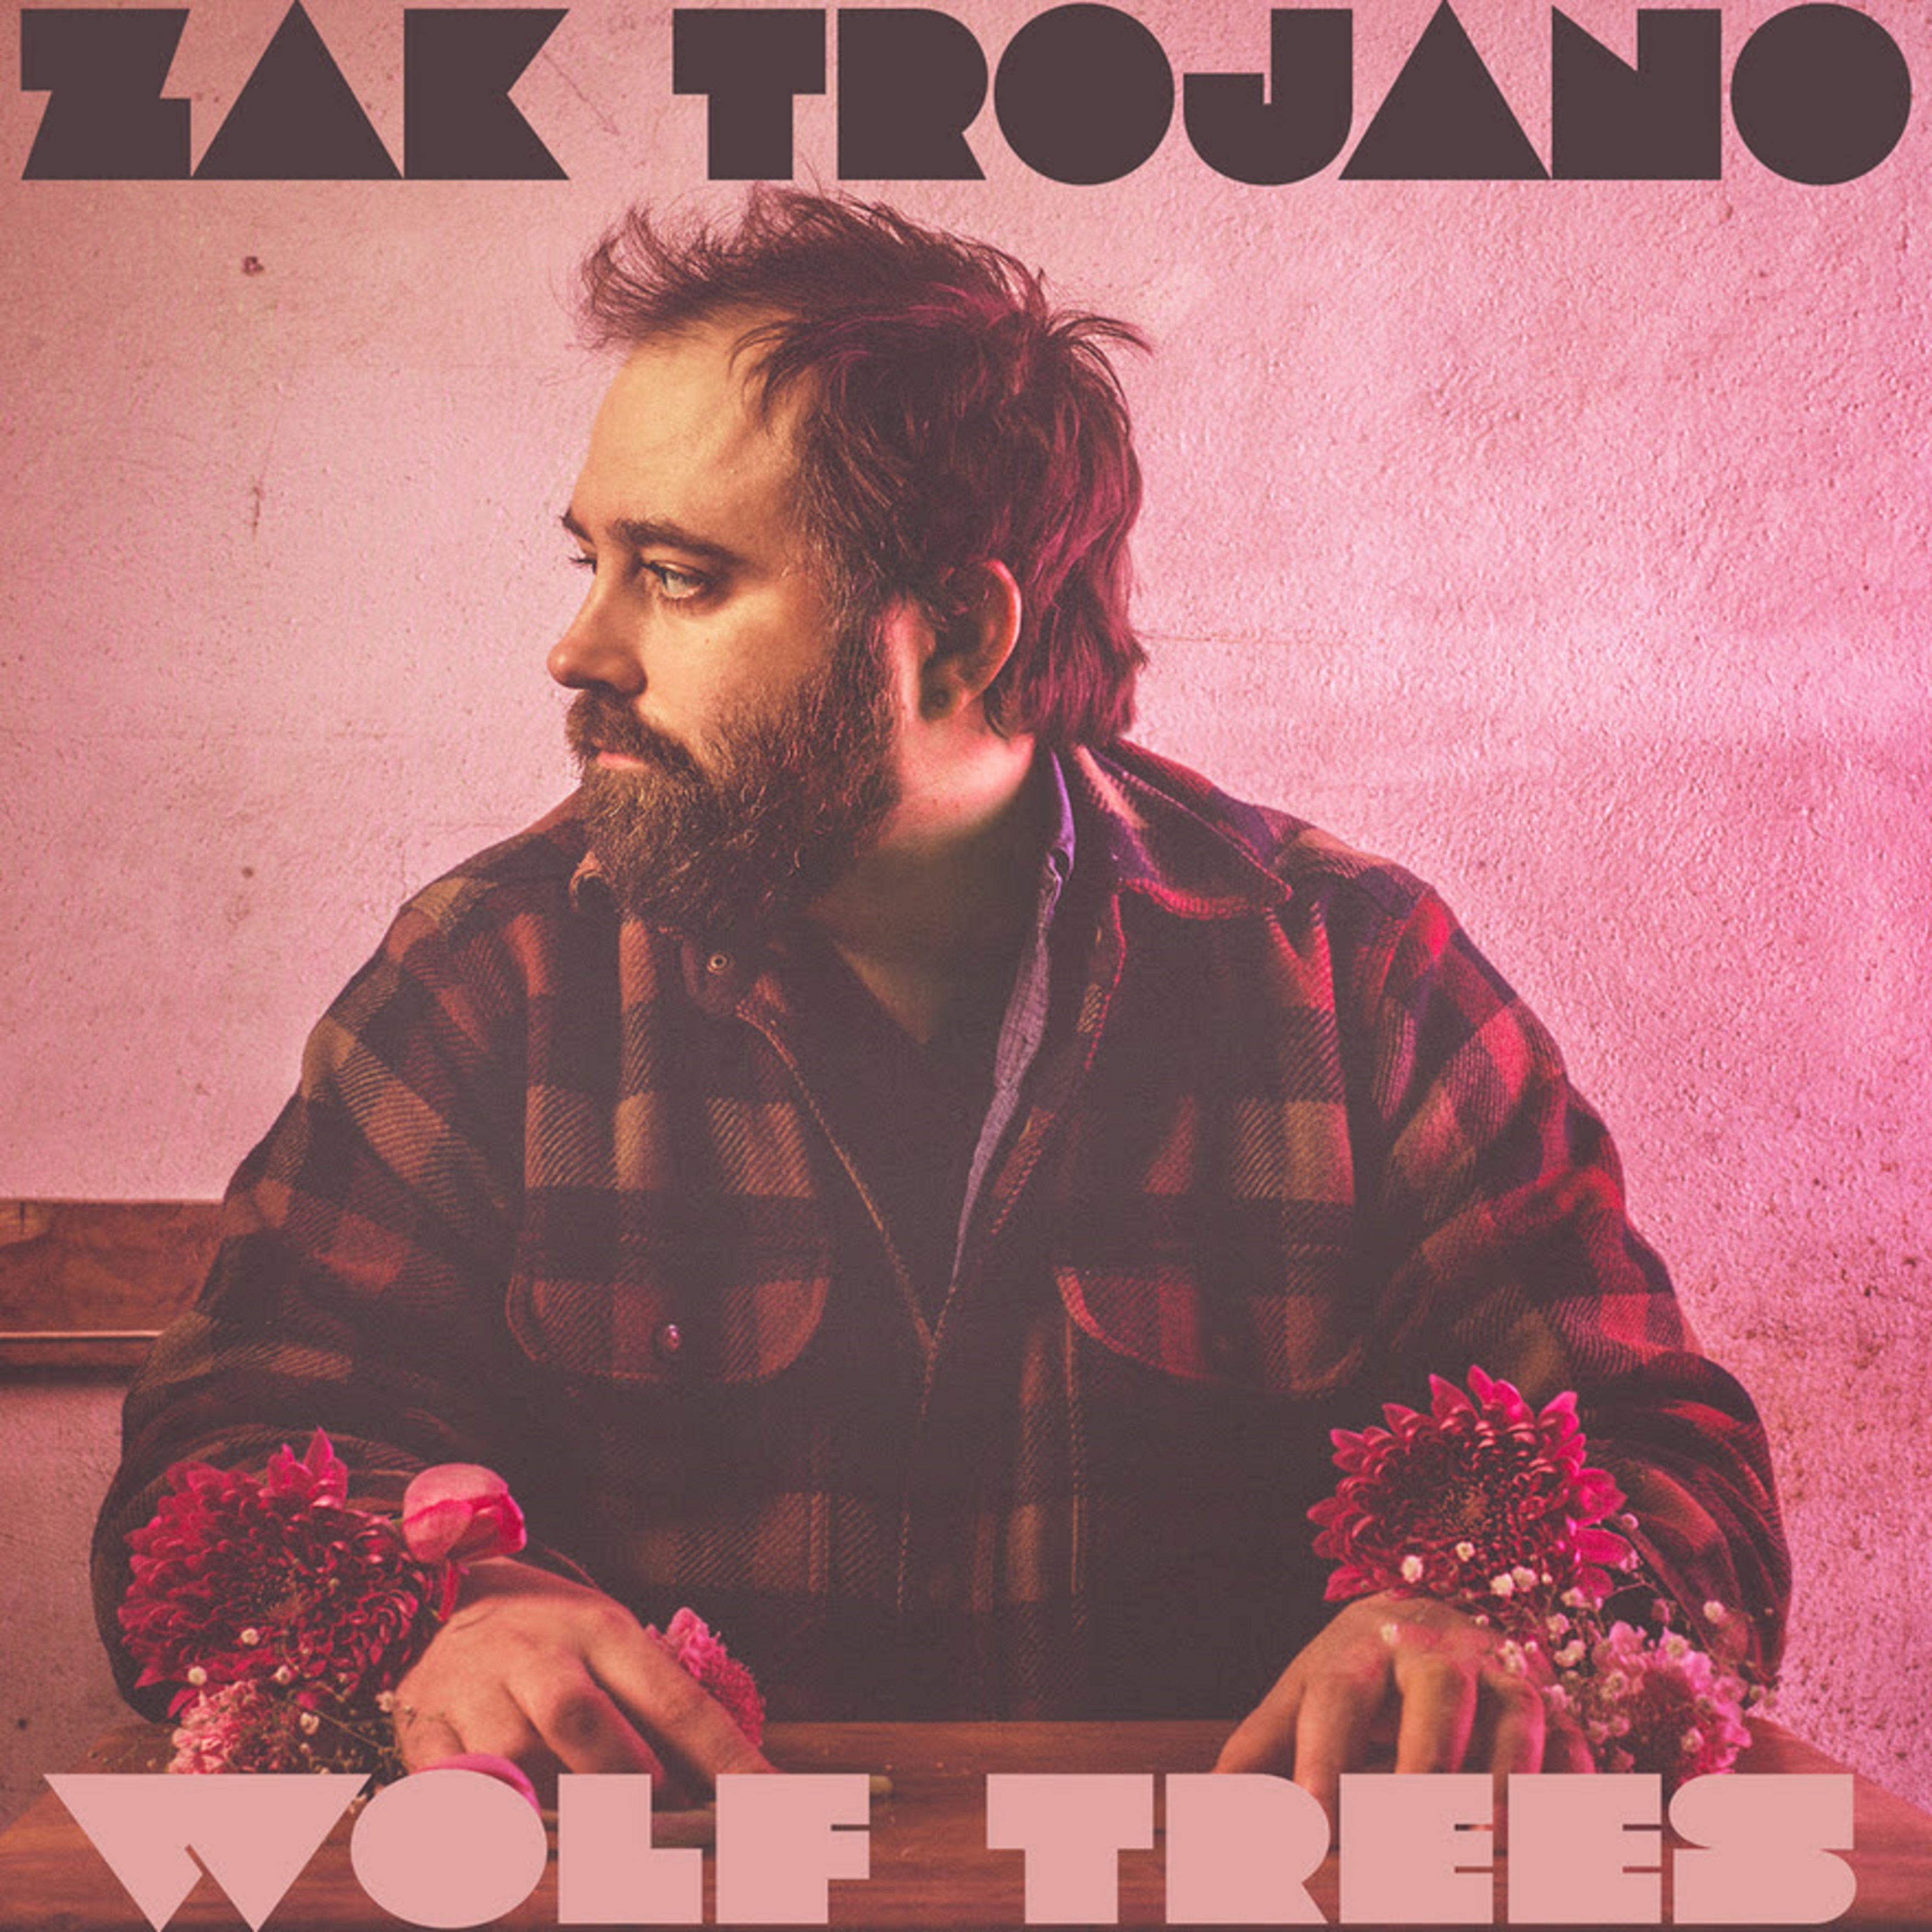 Zak Trojano to Release WOLF TREES on Aug 10